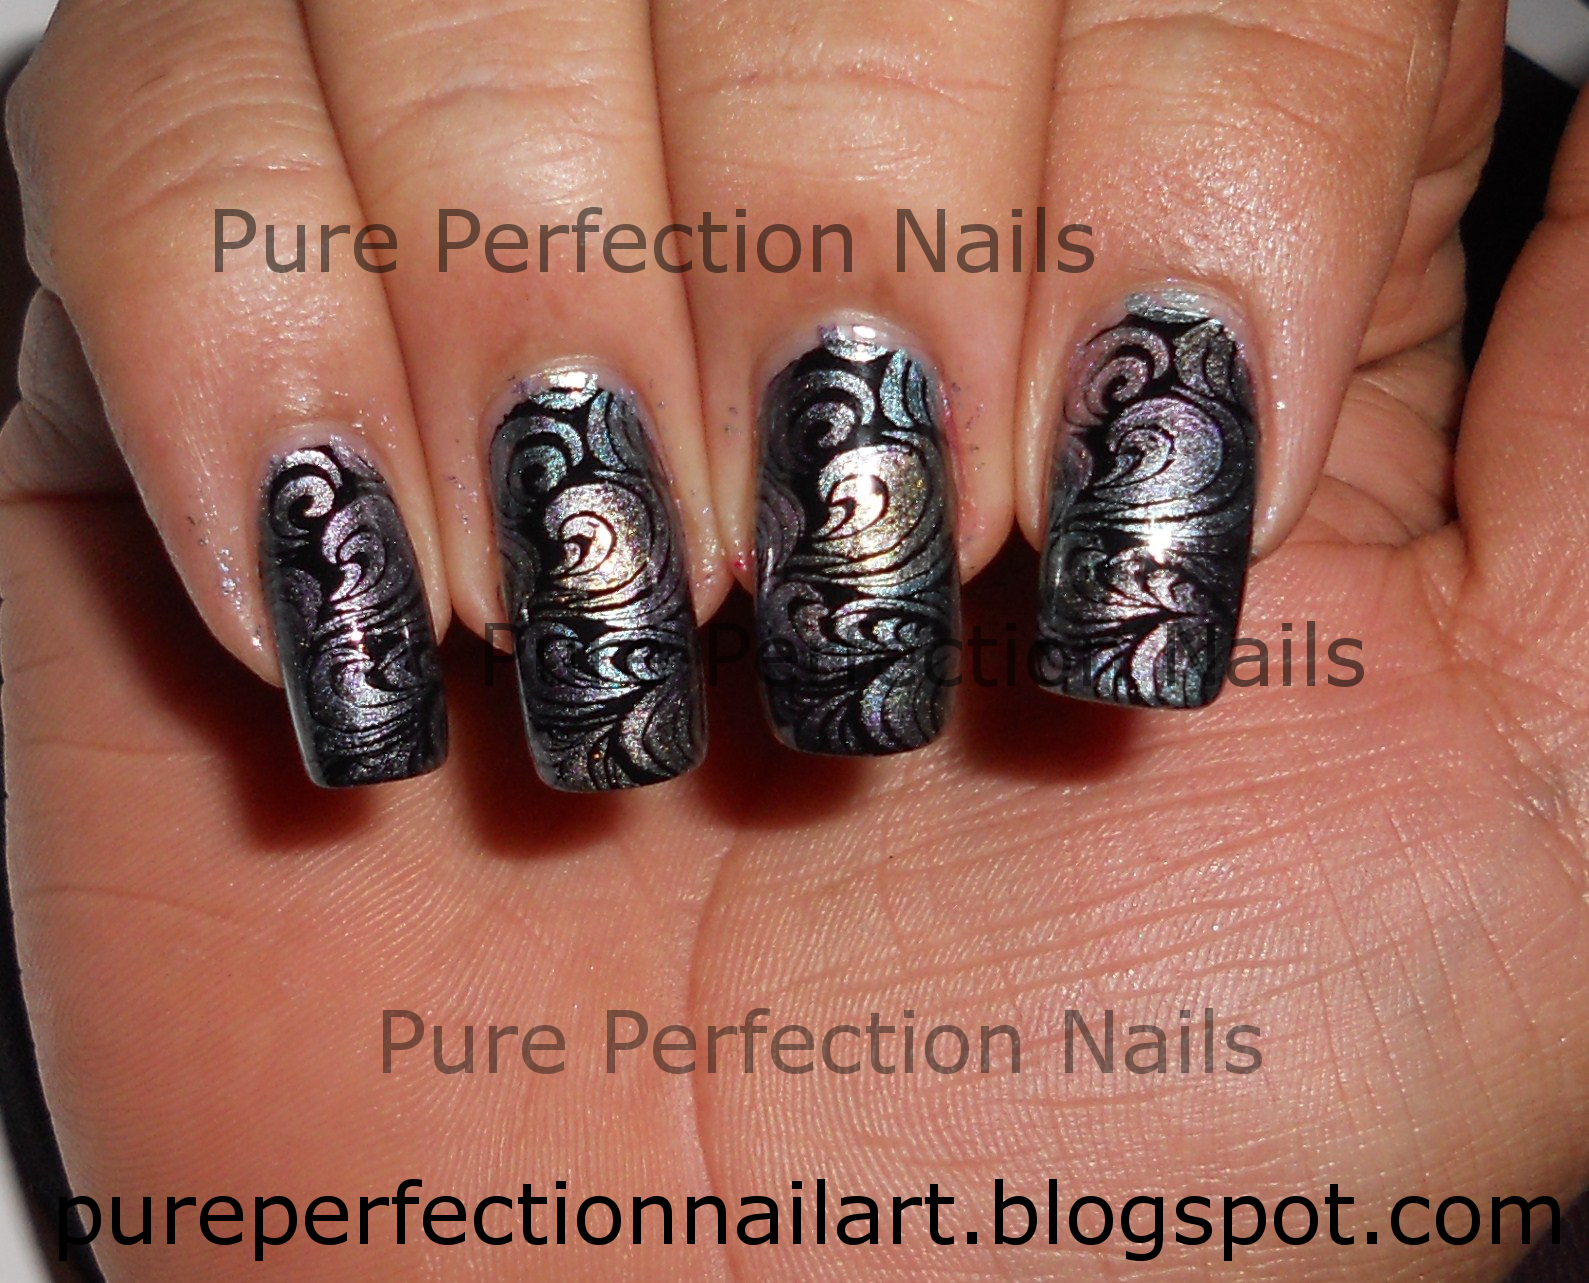 Pure Perfection Nails: Multi Chrome Stamping Nail Art